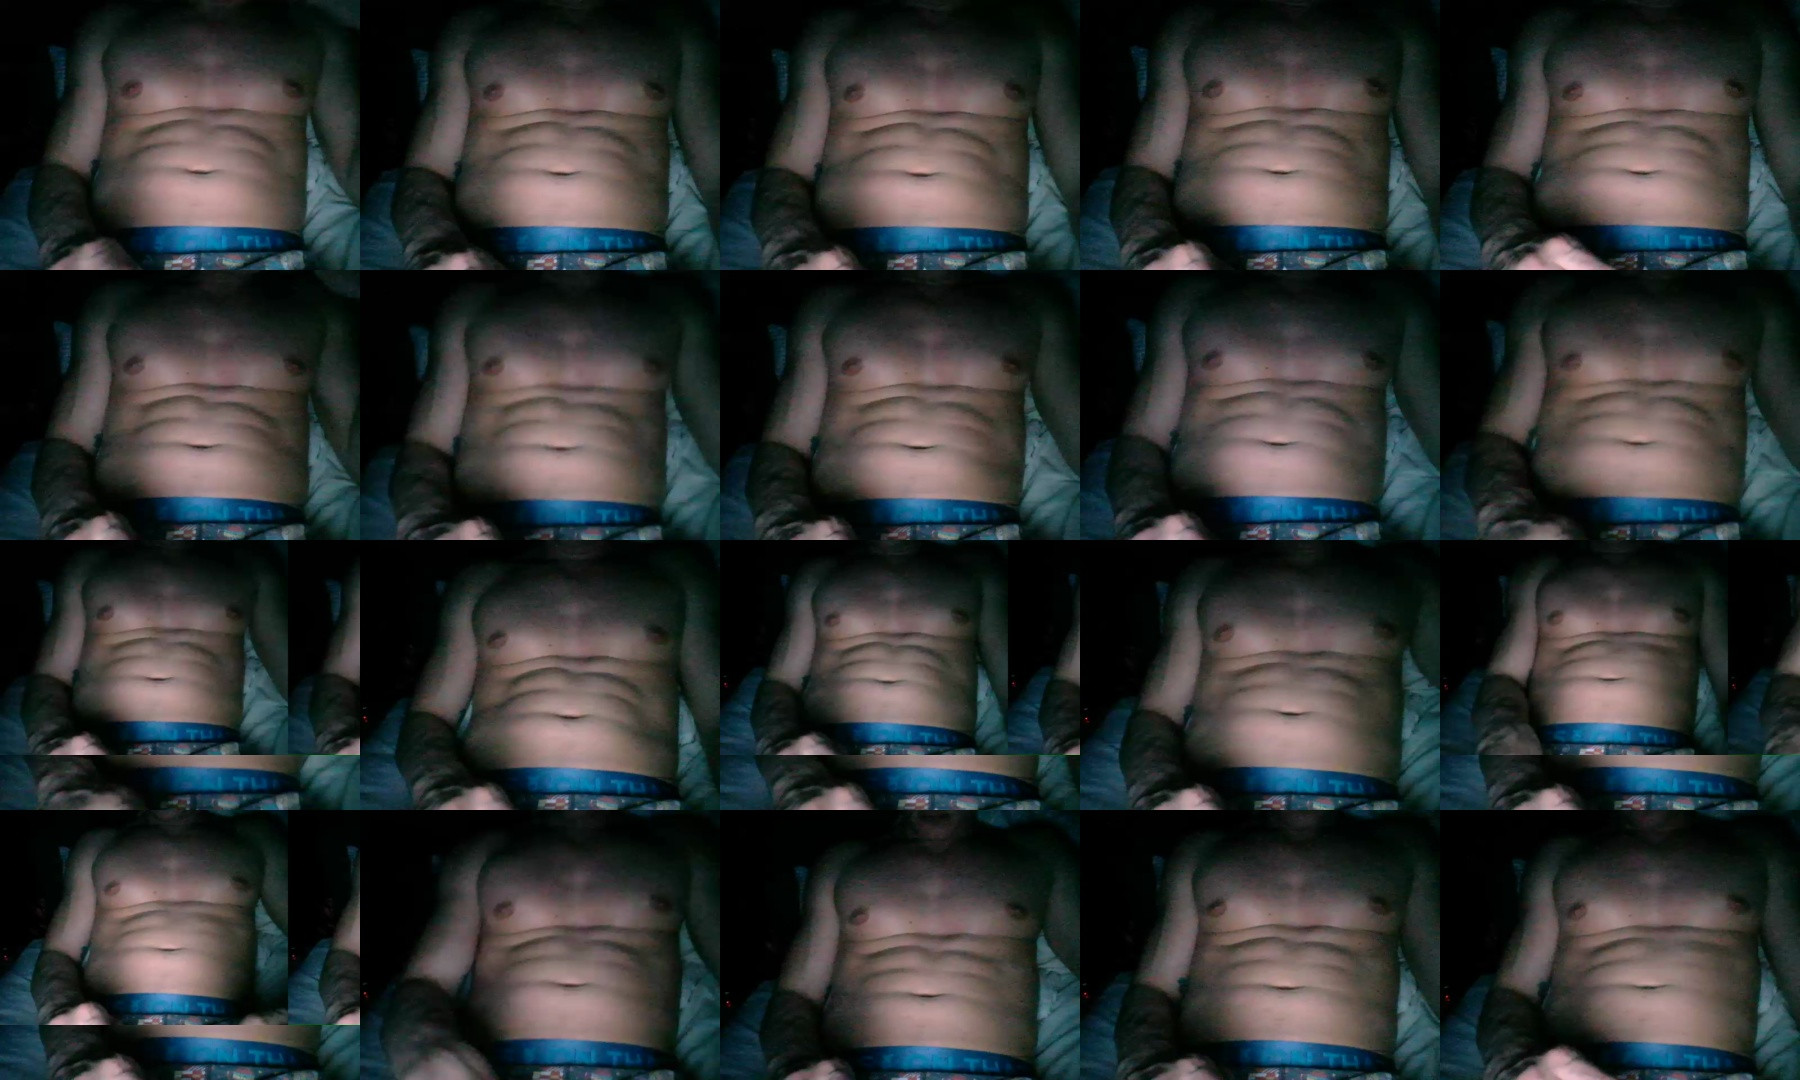 youngmann1 Cam4 02-03-2021 Recorded Video Show